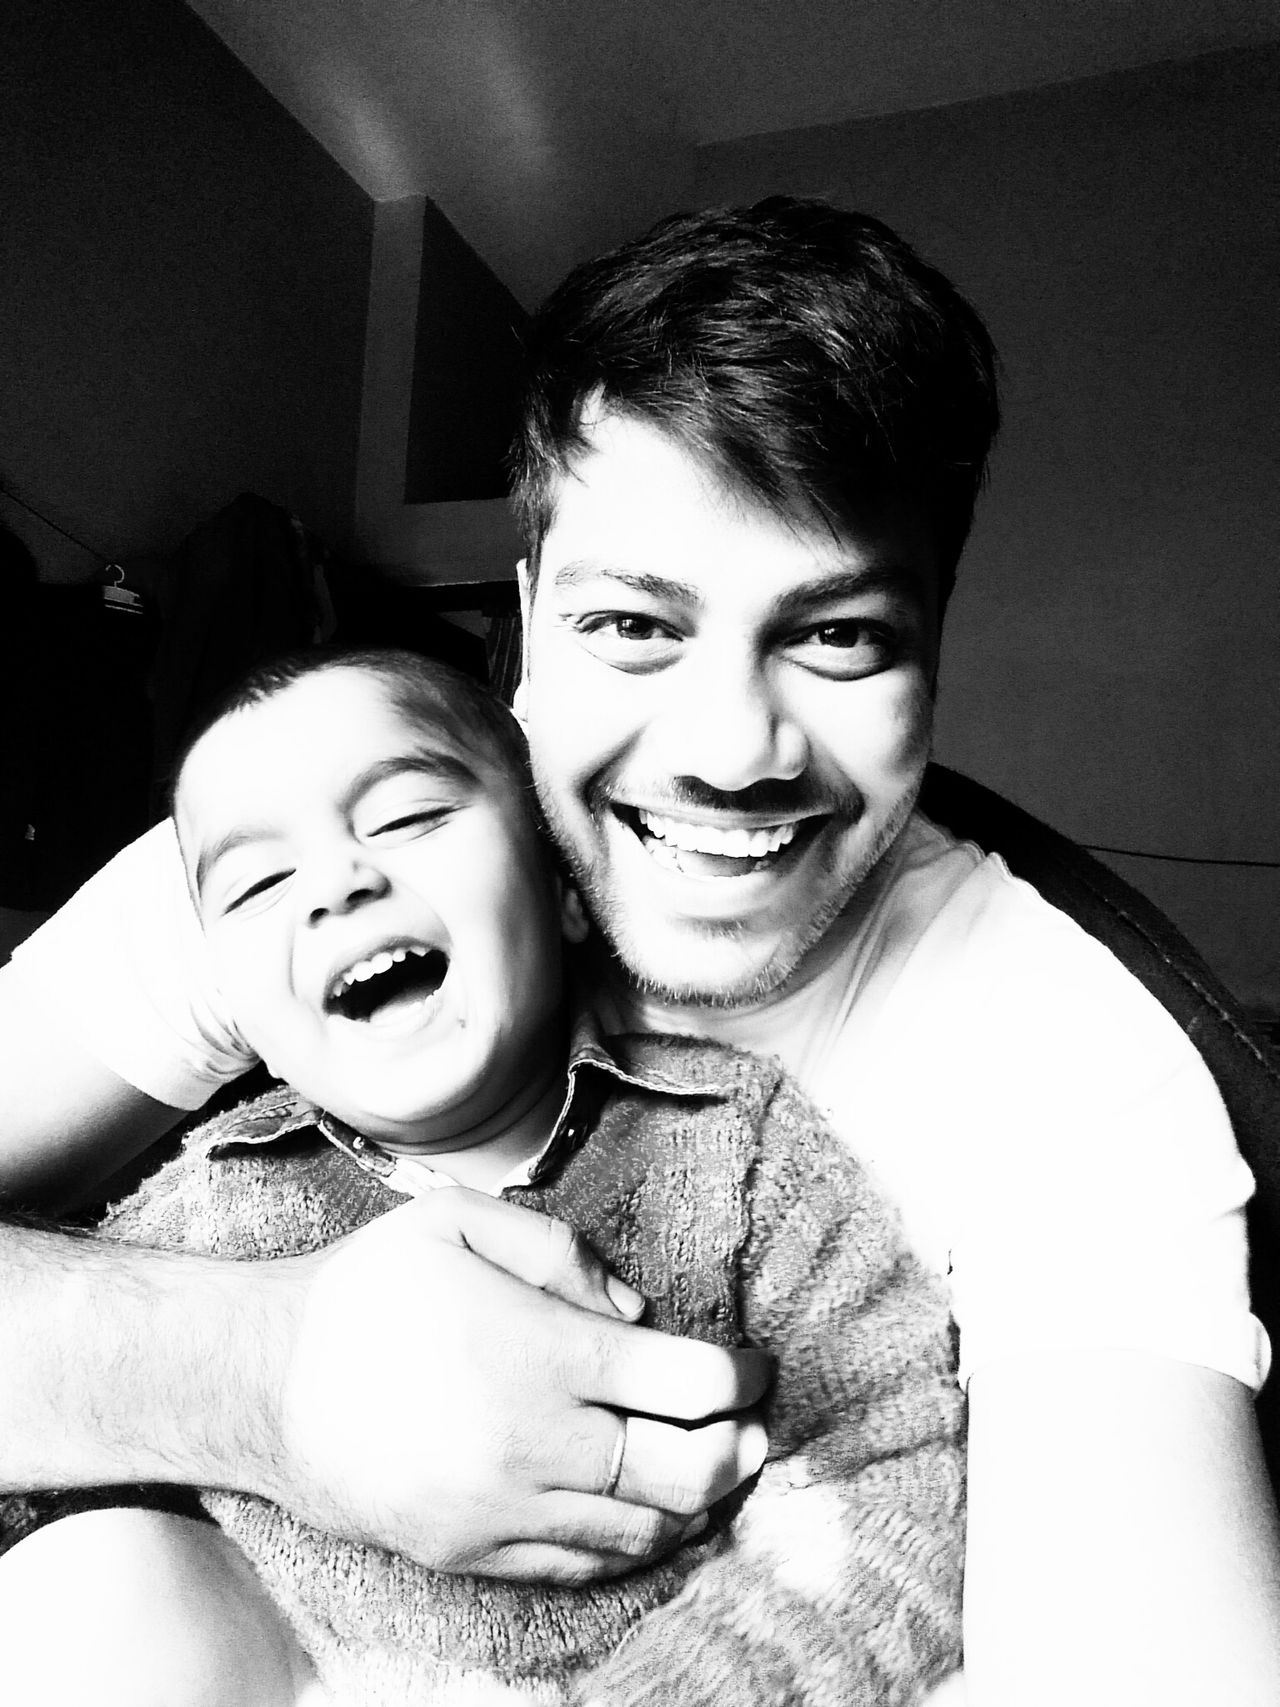 Enjoying with son 😎😂 Hello World ✌ Check This Out Bonding Lifestyles Looking At Camera Cheerful Portrait Smiling Two People Indoors  Innocence Light And Shadows Monochrome Photography Sweet Boy! ❤ Model Black & White Close-up Son And Father Enjoying Life Togetherness Selfportrait Selfie✌